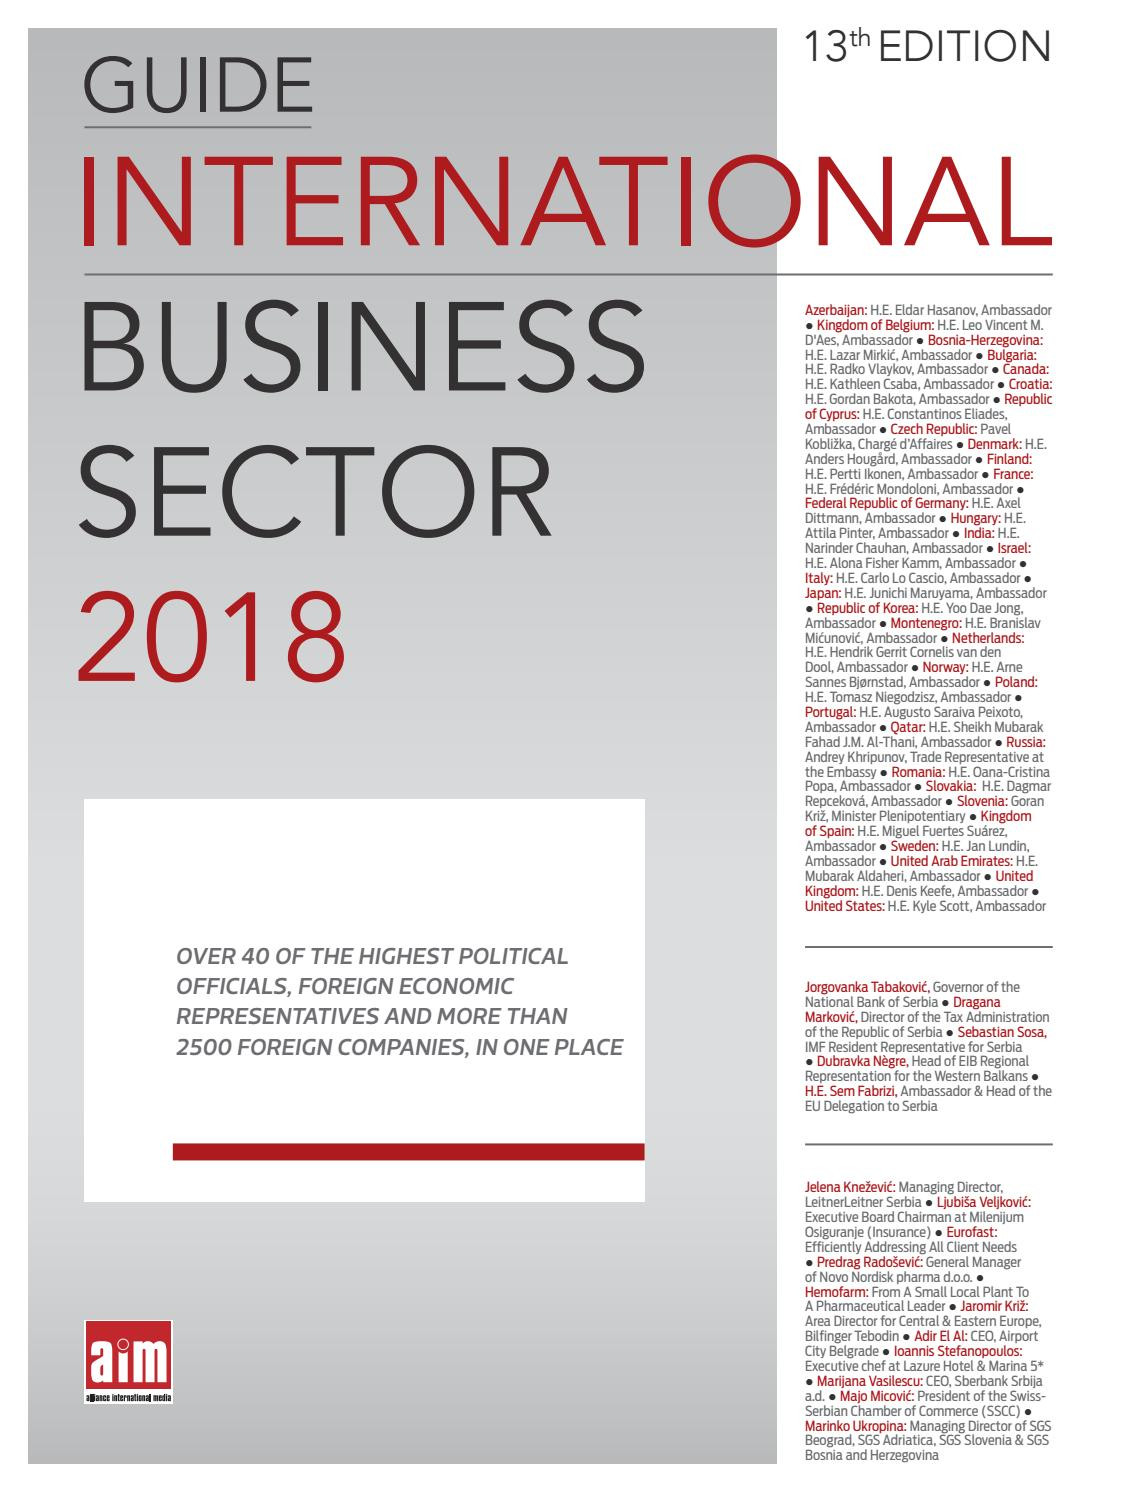 E 585 Sales Tax form Best Of International Business Sector 2018 by Cord Magazine issuu